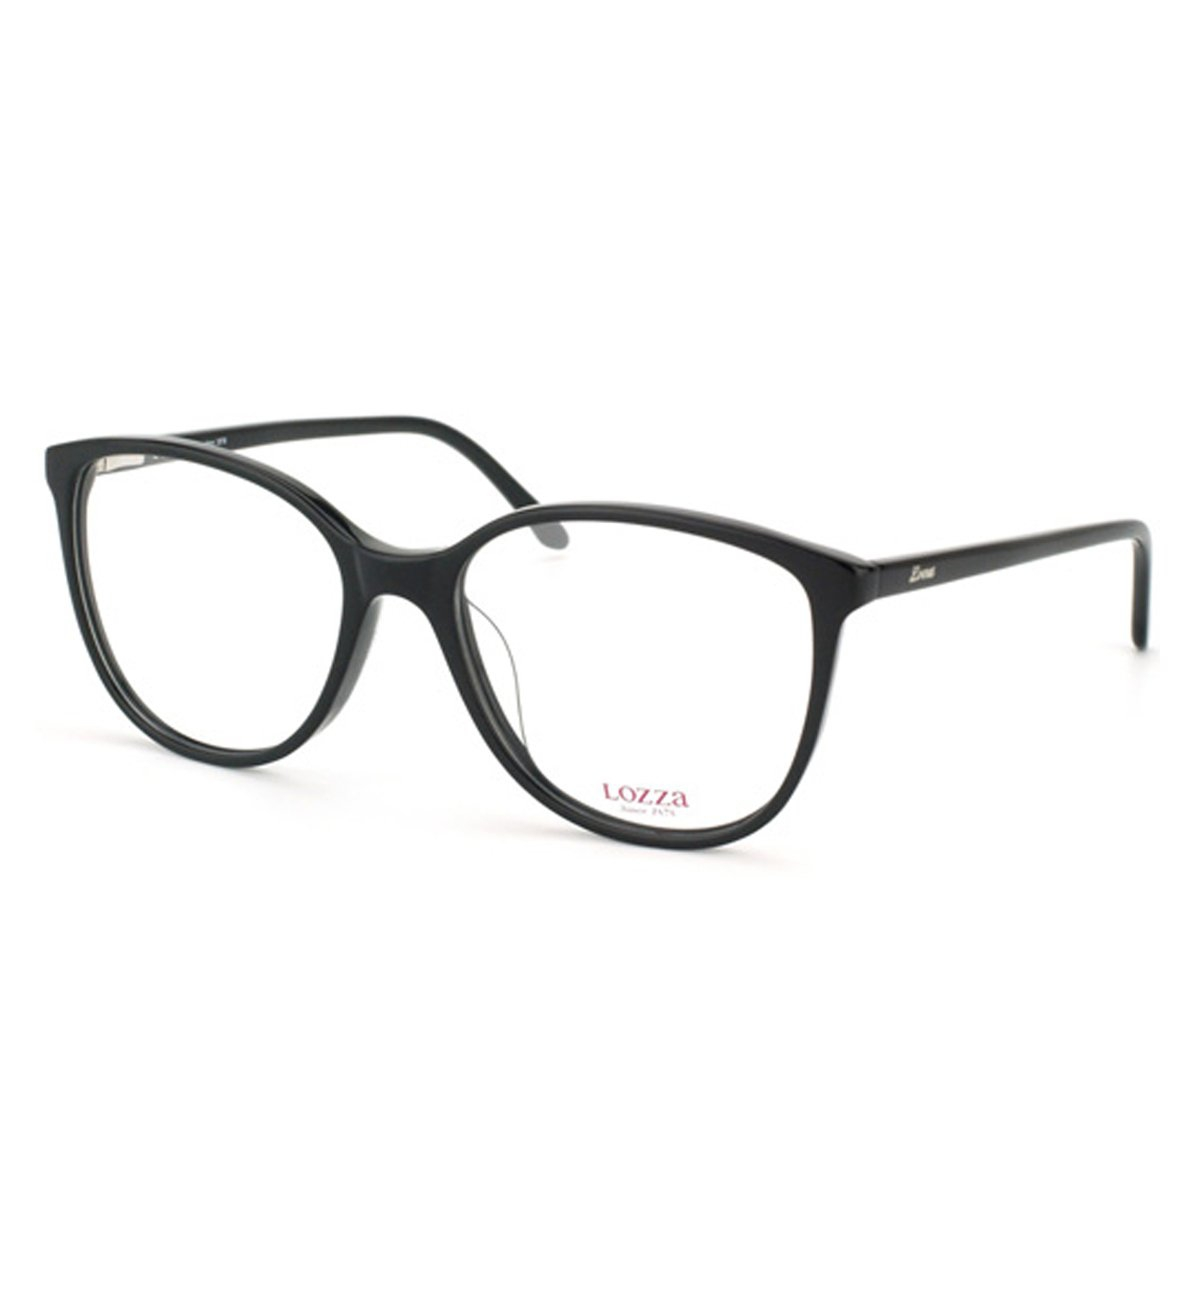 Lozza VL1939 Black Women's Glasses